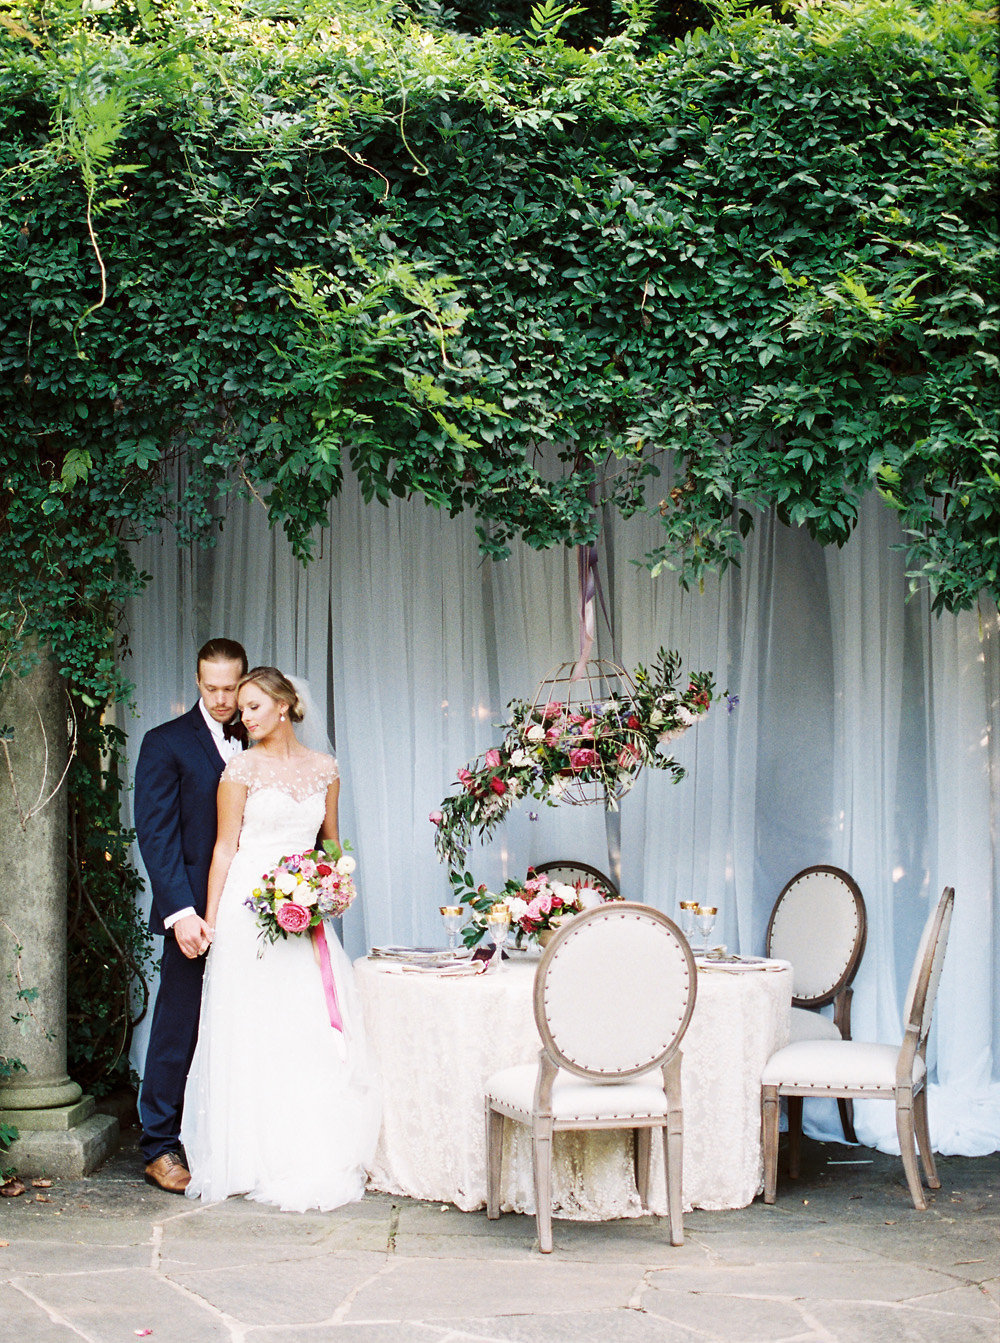 Cator Woolford Gardens Enchanted Wedding Inspiration Fine Art Photography.2